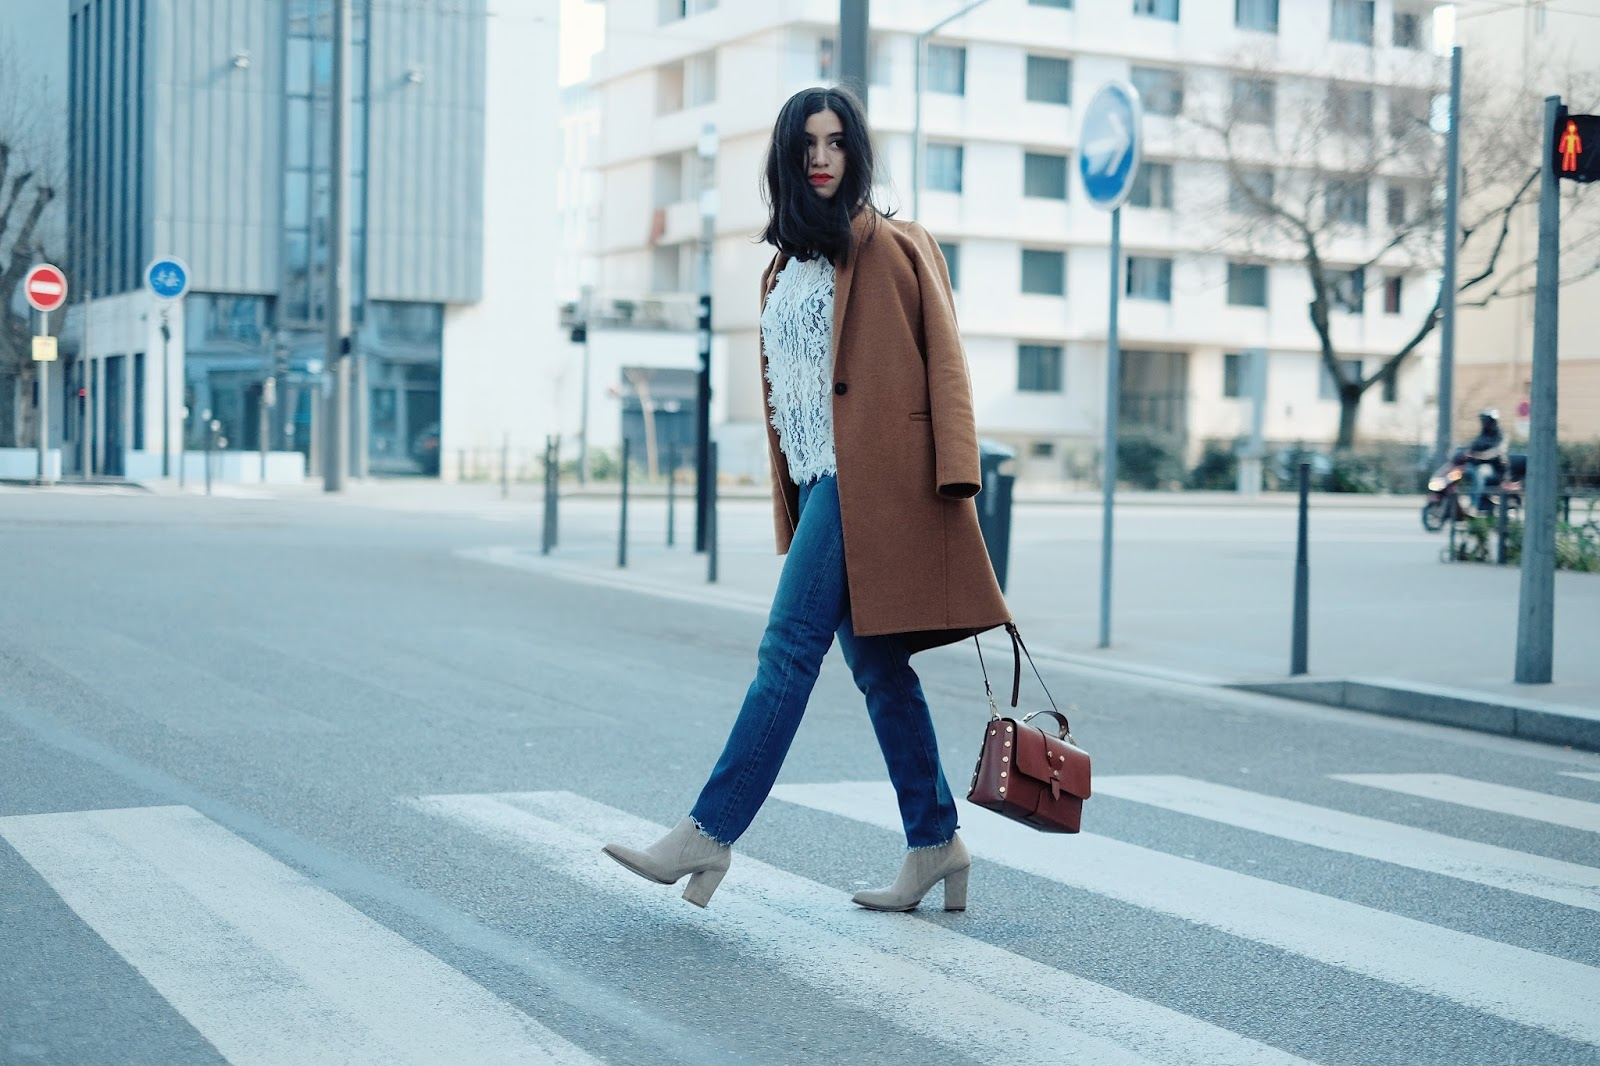 ameni daily, blog mode lyon, blog mode, amenidaily, blogueuse lyonnaise, comptoir des cotonniers, grace&mila, grace and mila, streetstyle, french blogger, blogueuse mode